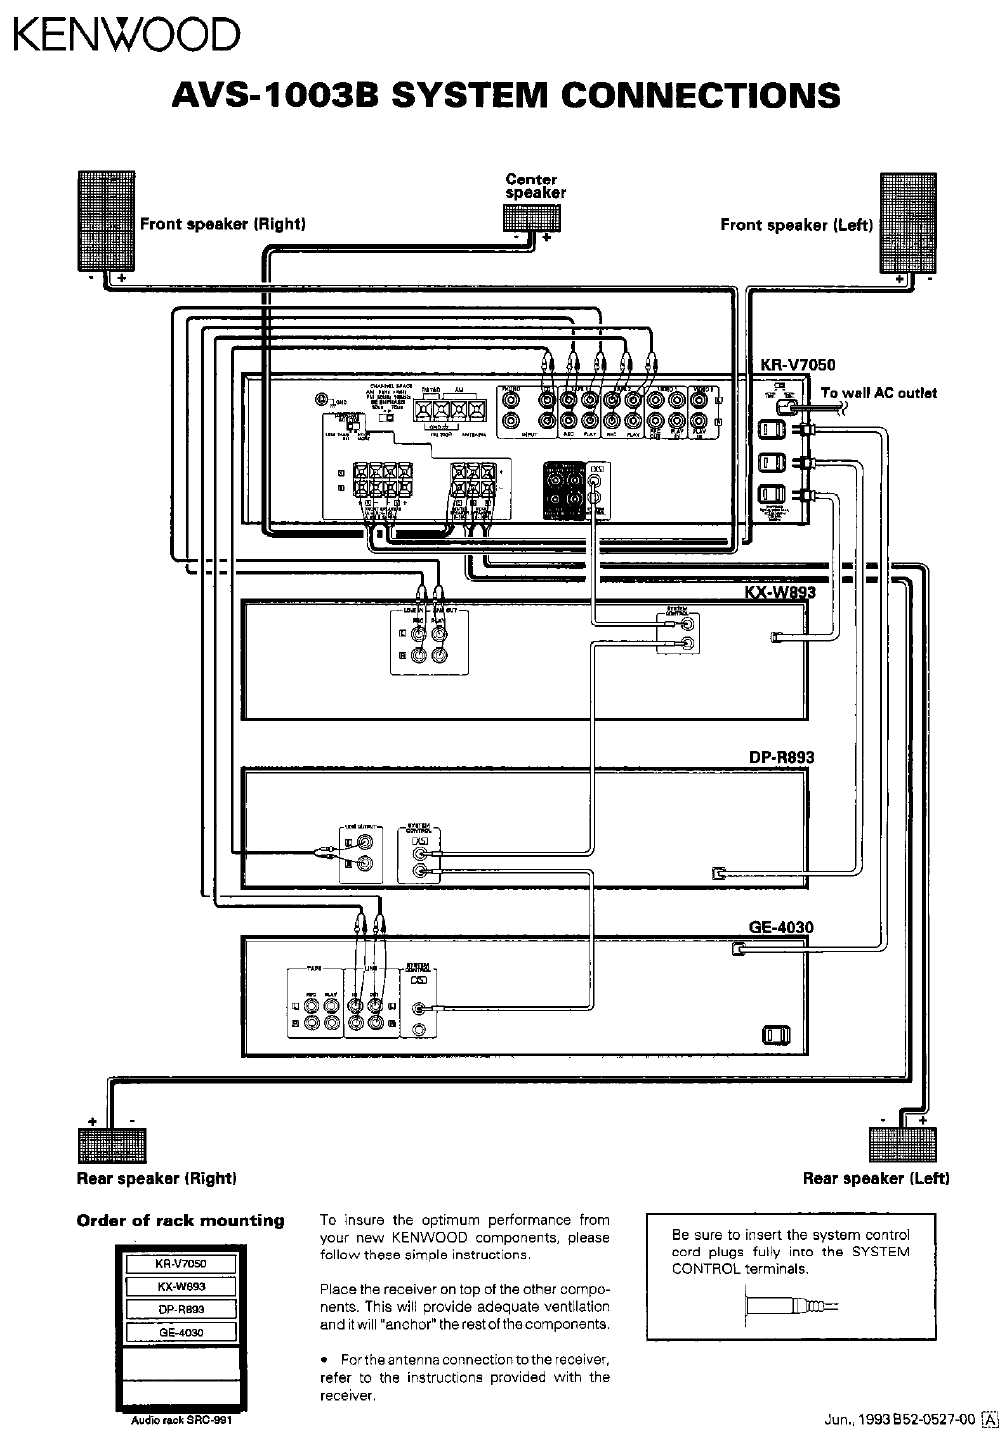 Kenwood AVS-1003B Home Theater System User Manual